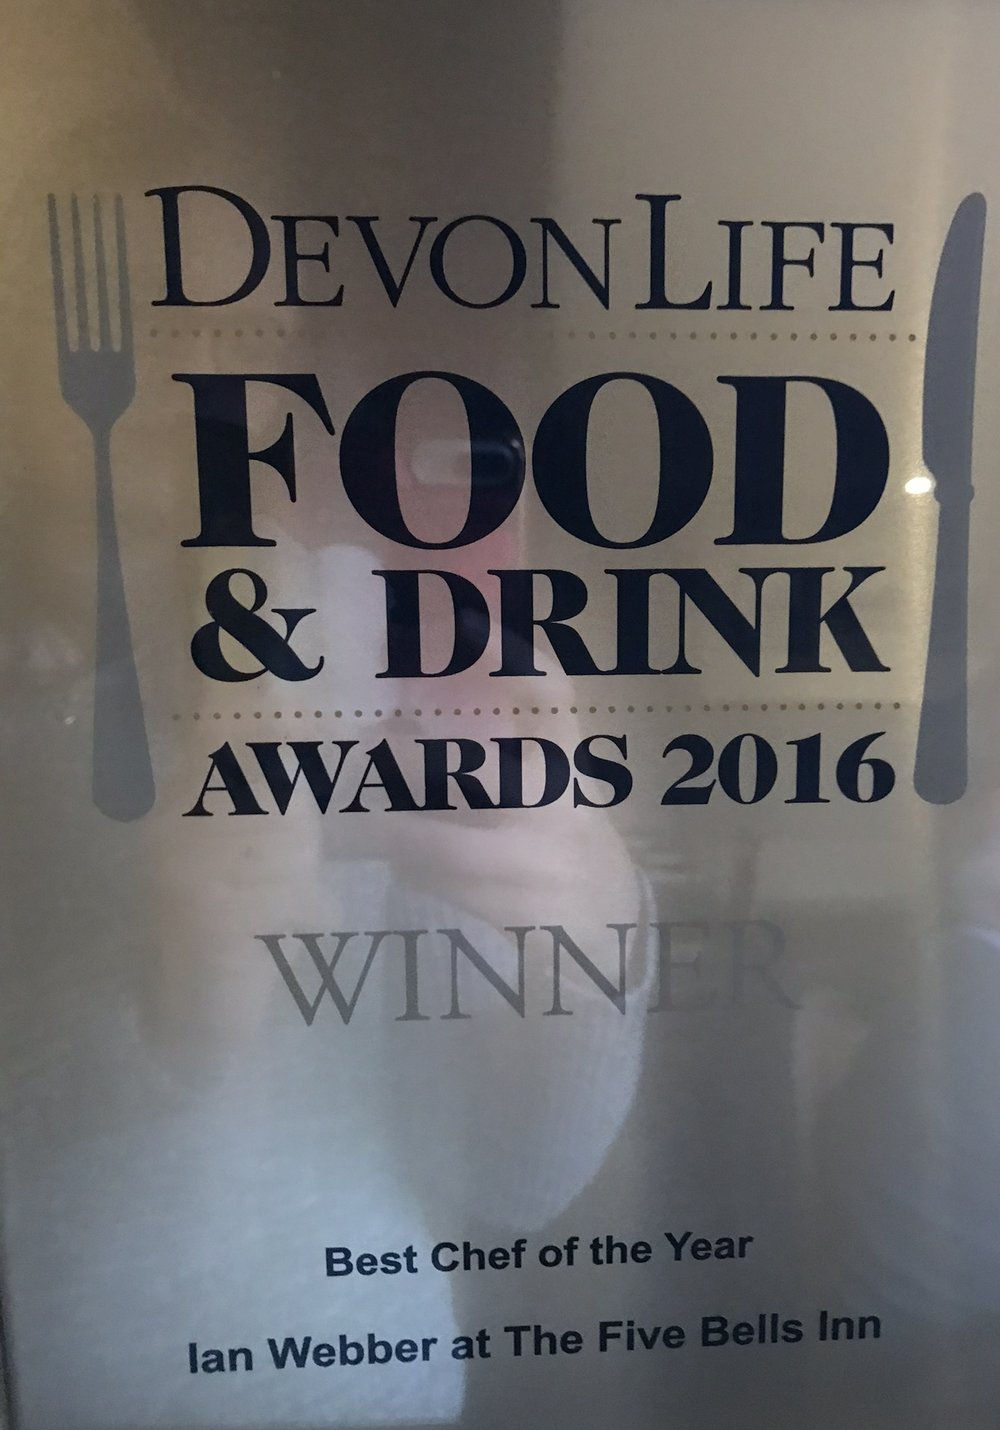 Devon Life Food and Drink Awards 2016 Best Chef of the Year